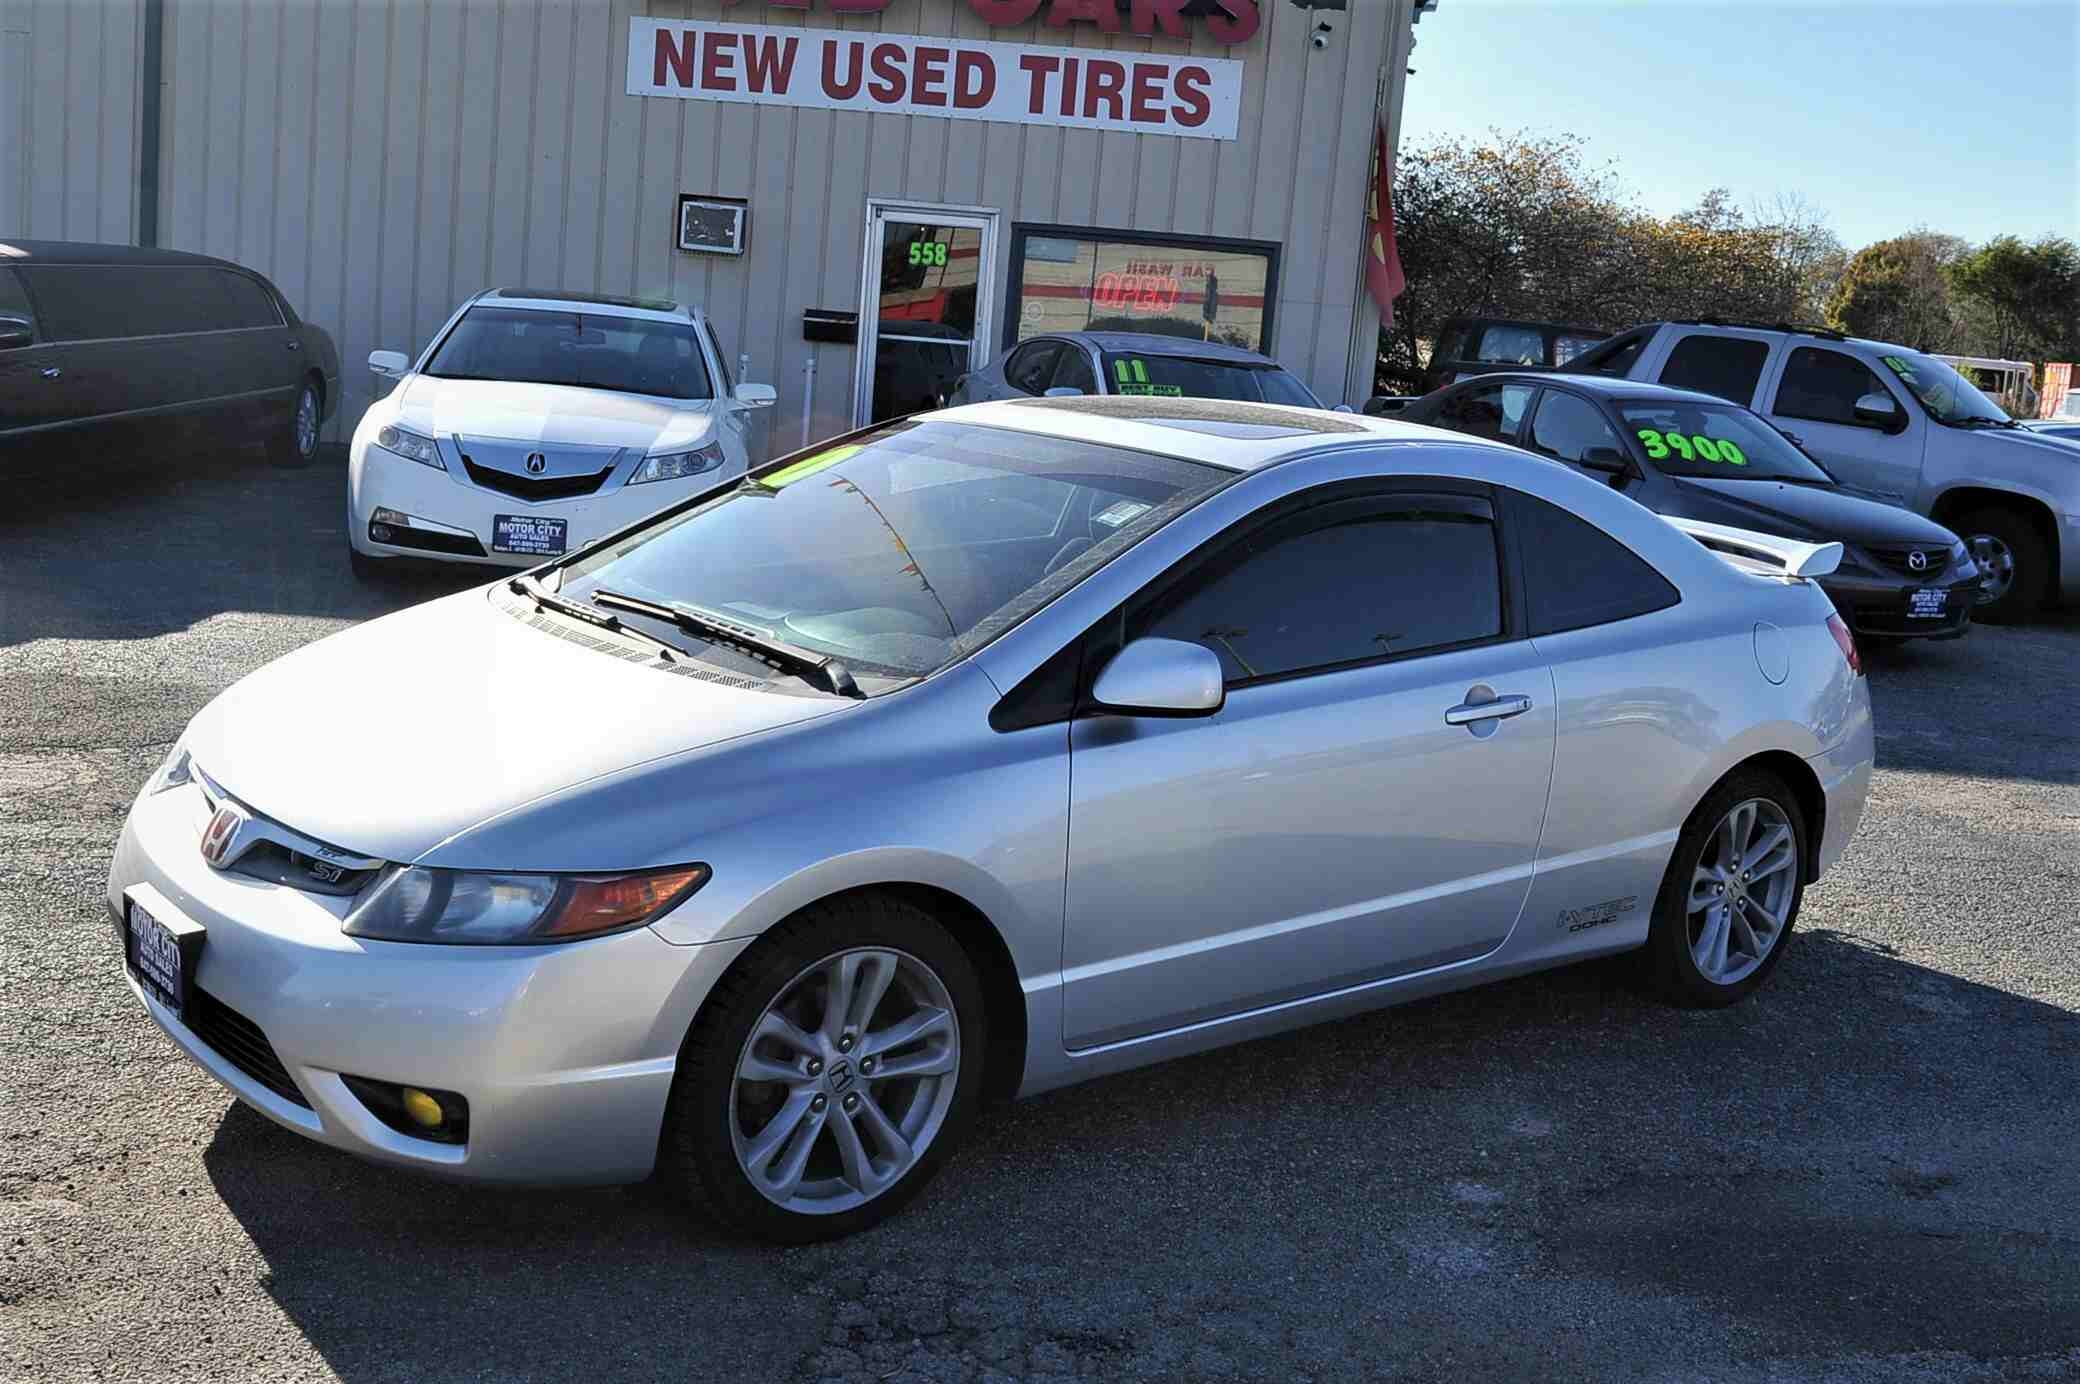 2007 Honda Civic Silver SI Manual Coupe Used Car Sale Antioch Zion Waukegan Lake County Illinois